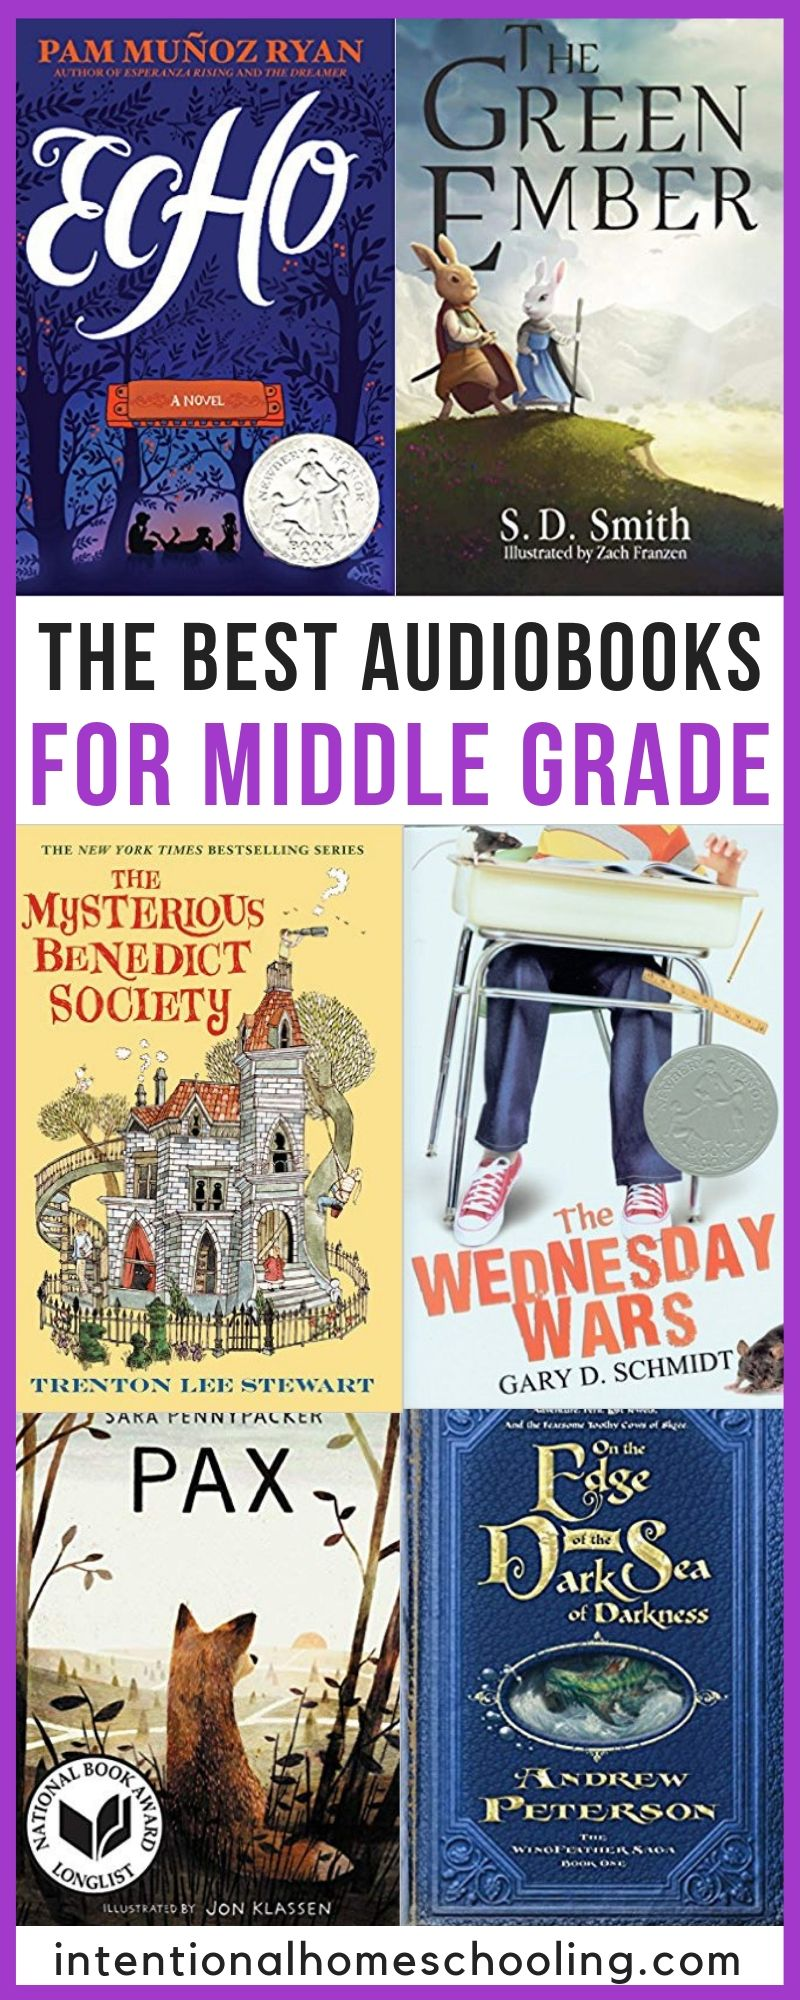 The Best Audiobooks for Middle Grades - best for grades 5, 6, 7 and 8!